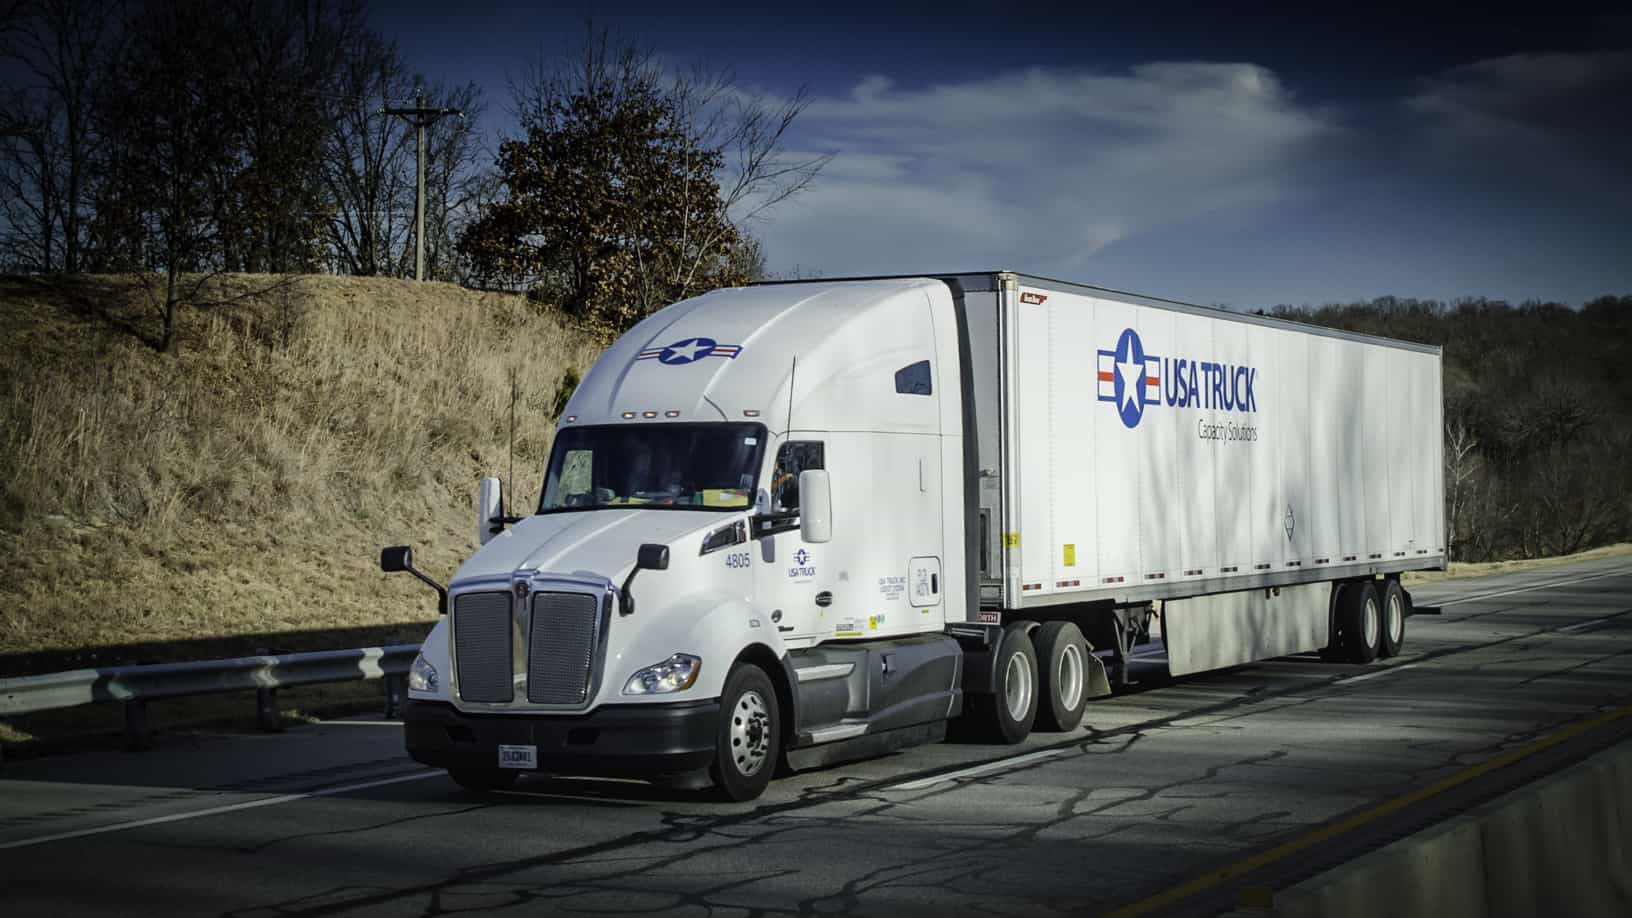 USA Truck blames soft freight environment, declining spot rates for